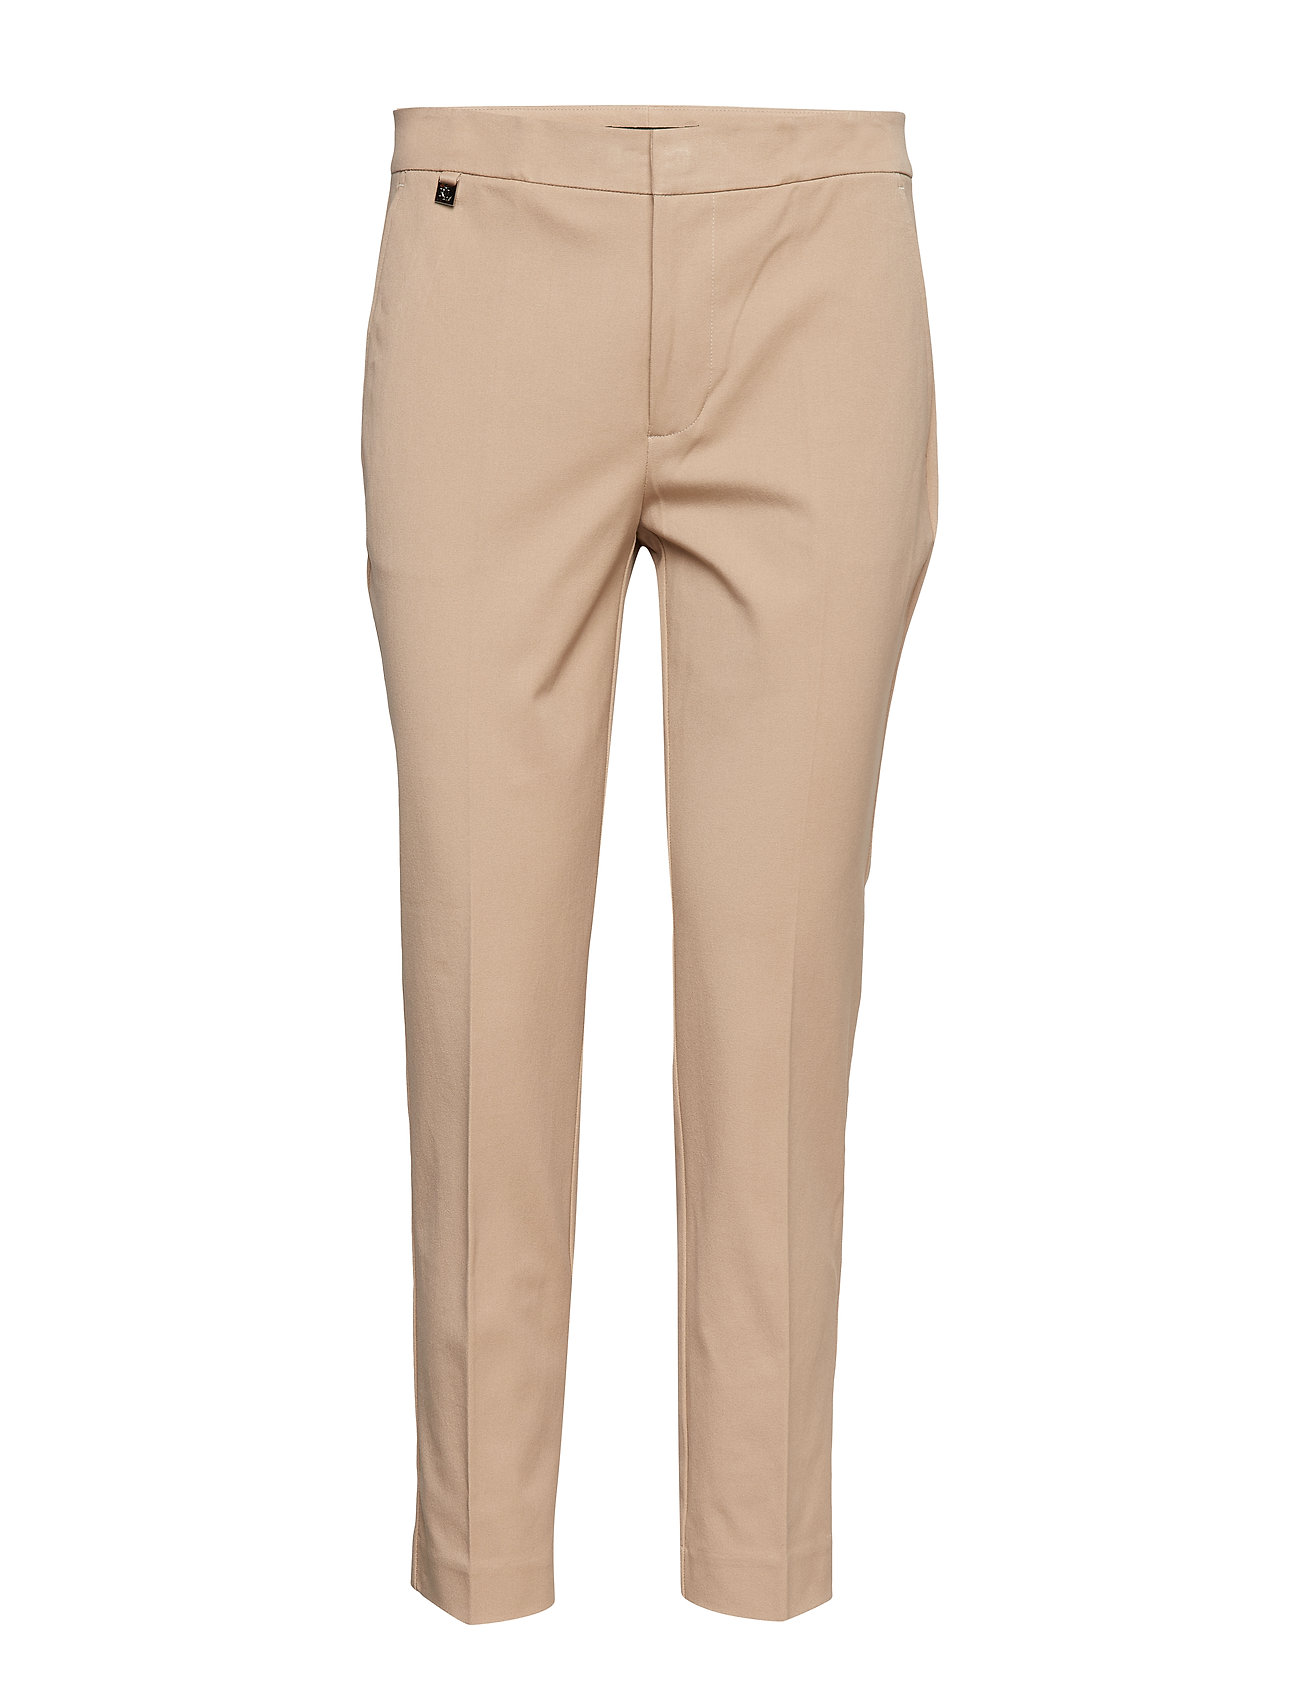 Lauren Ralph Lauren Cotton Twill Skinny Pant - BIRCH TAN